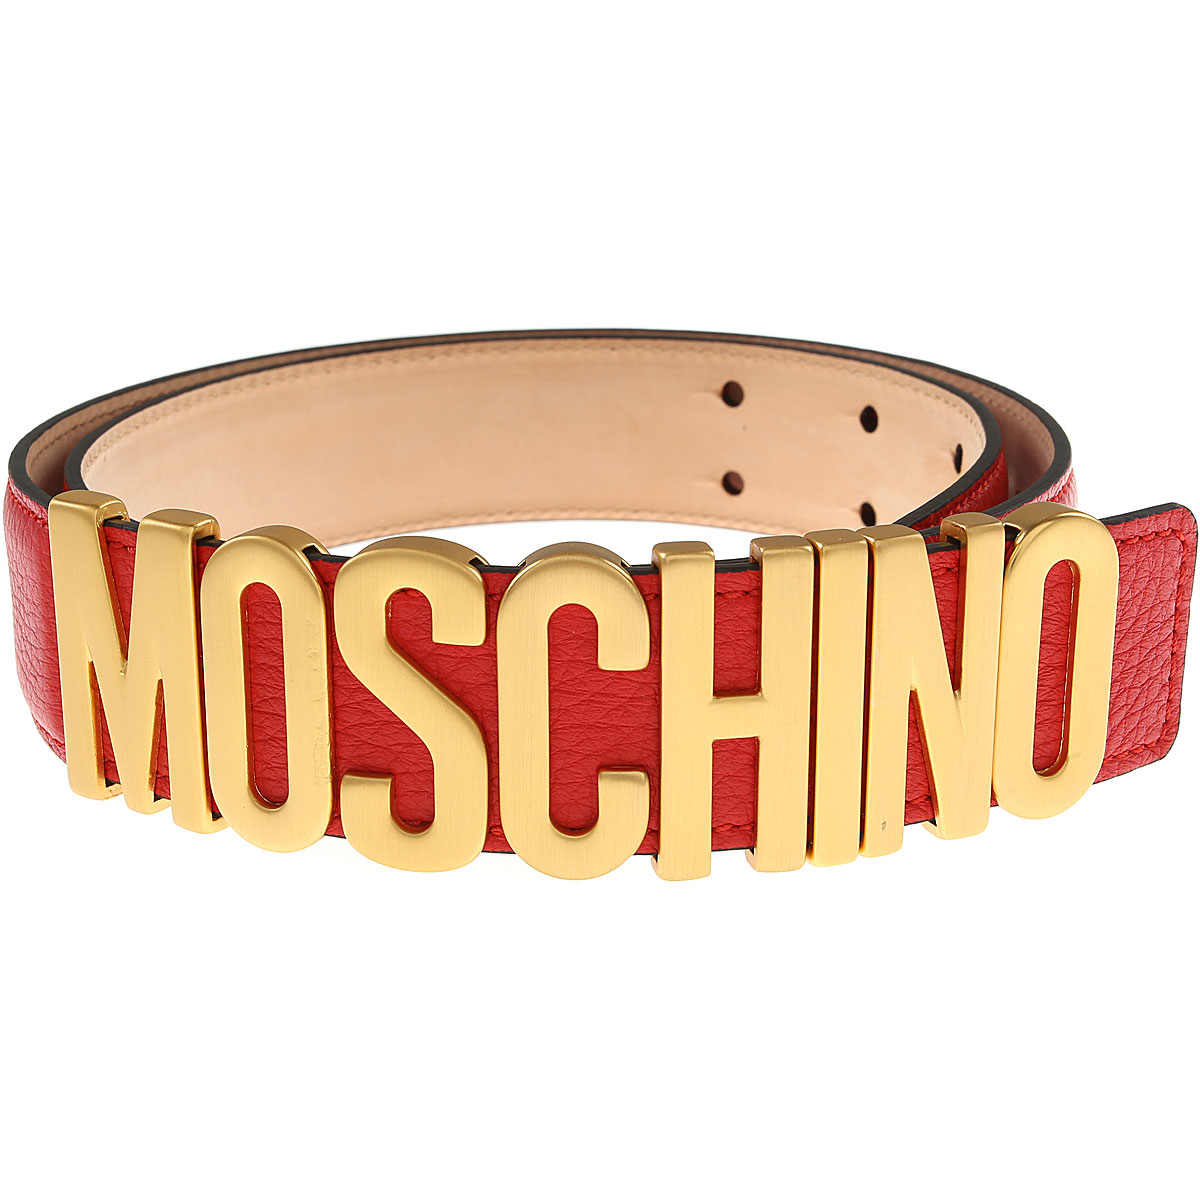 Moschino Womens Belts, Red, Leather, 2017, 38 inches - 95 cm 40 inches - 100 cm 42 inches - 105 cm 44 inches - 110 cm 30 inches - 75 cm